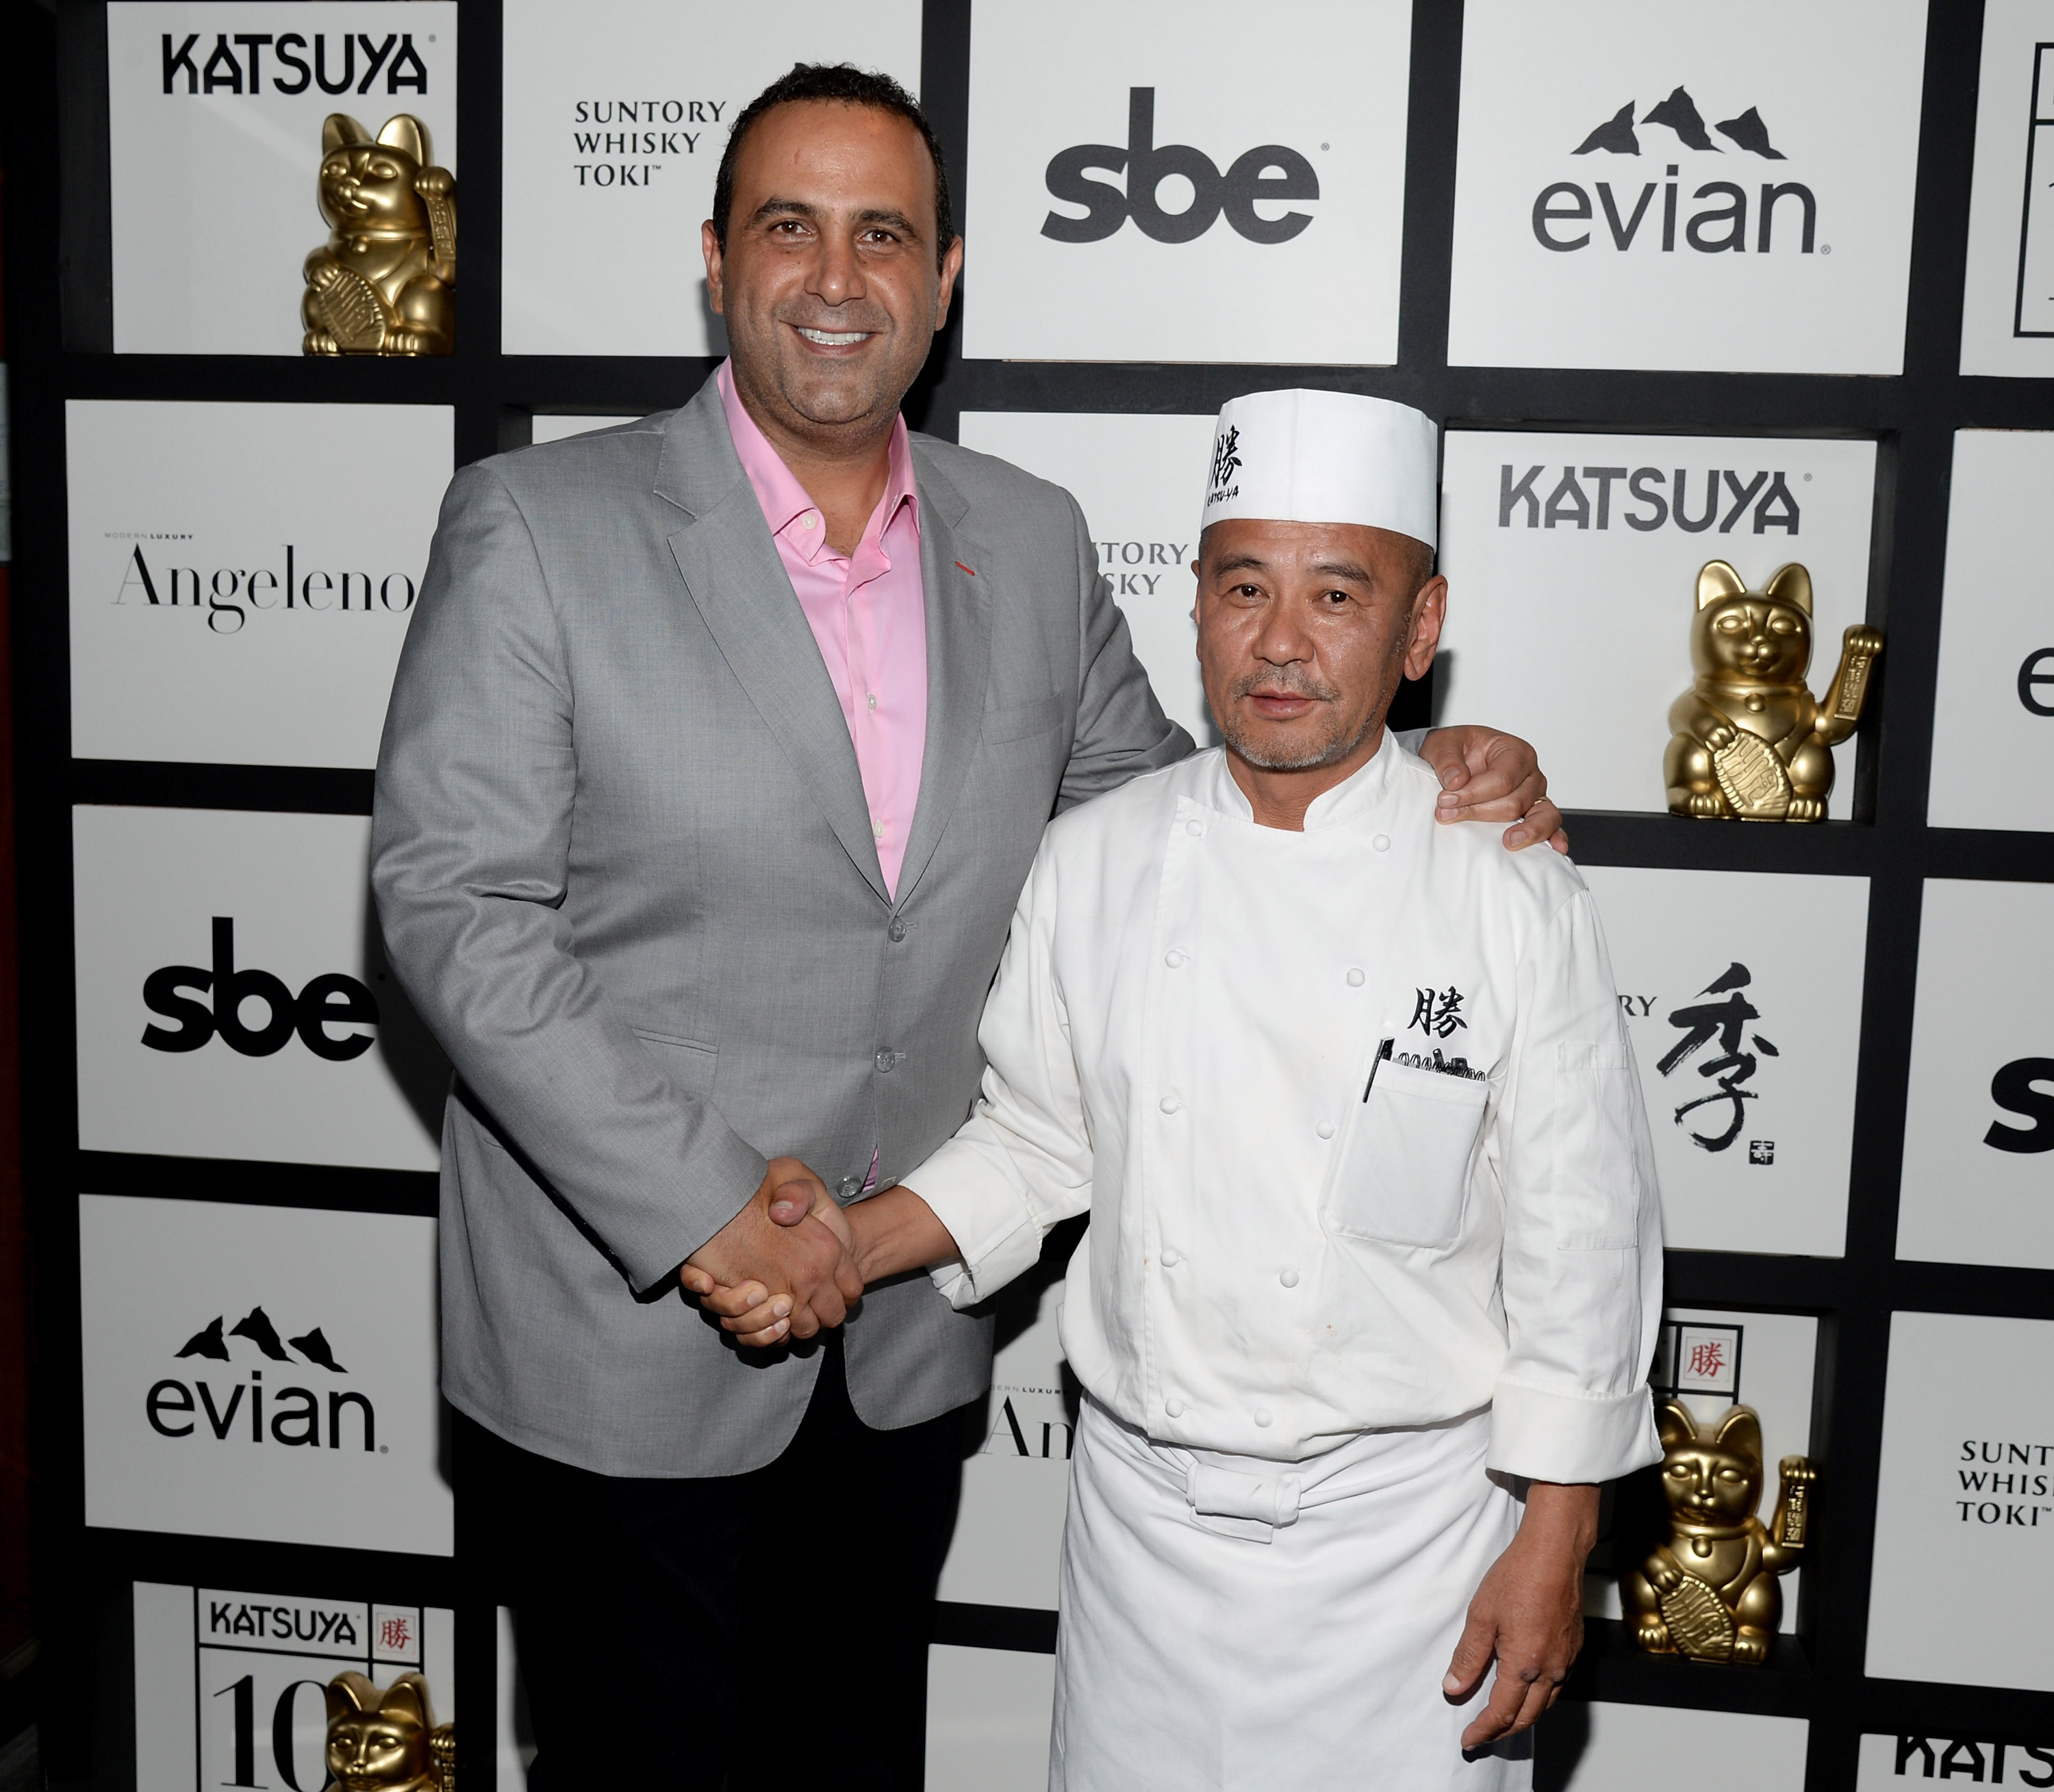 LOS ANGELES, CA - JUNE 15: CEO of sbe Entertainment Group Sam Nazarian (L) and Chef Katsuya Uechi attend Katsuya Brentwood Celebrates A Decade on June 15, 2016 in Los Angeles, California. (Photo by Michael Kovac/Getty Images for Katsuya)